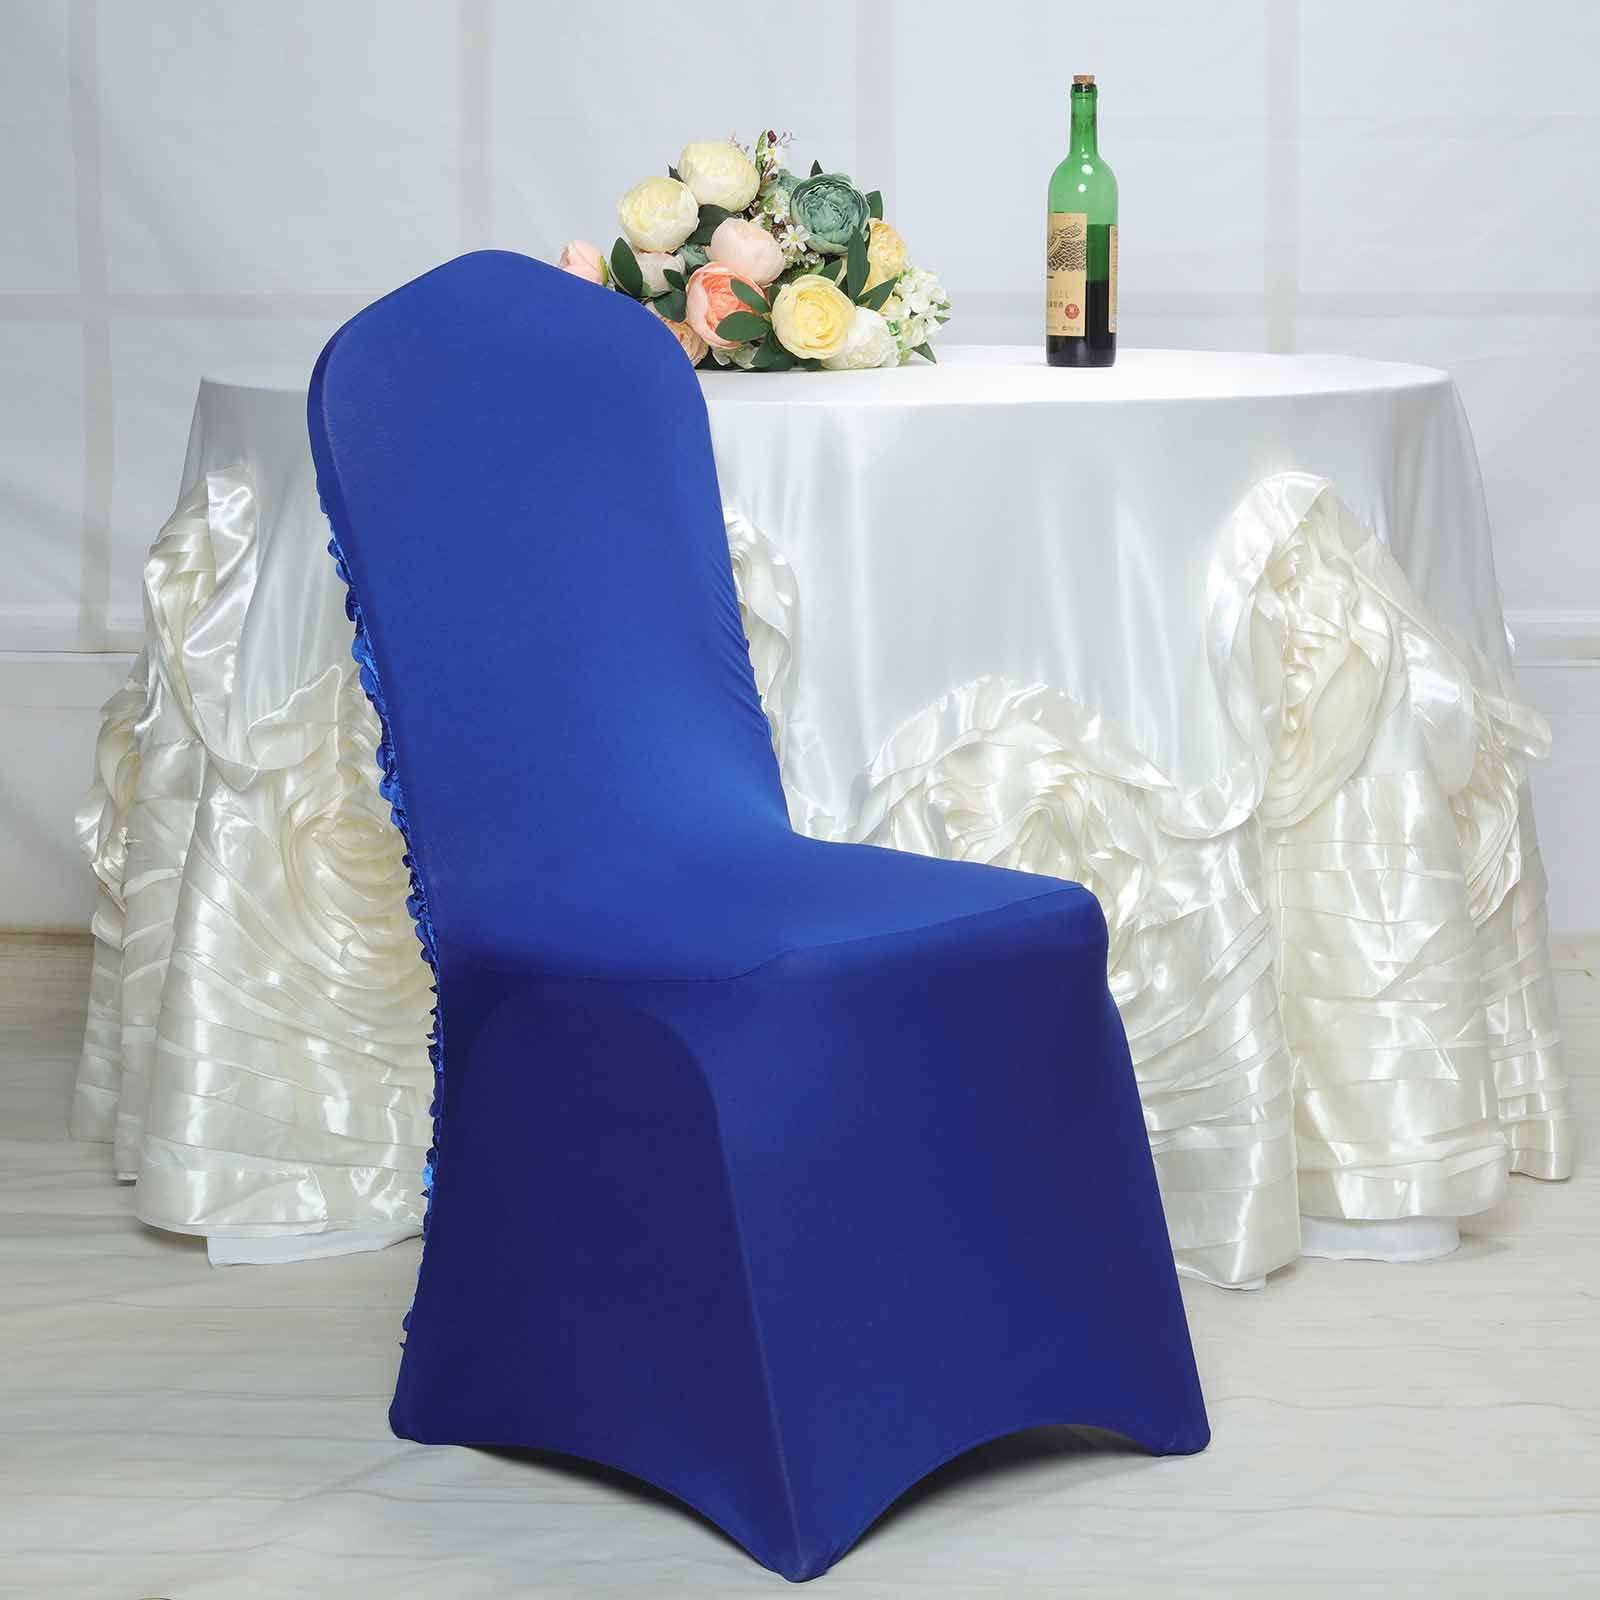 Miraculous Satin Rosette Royal Blue Stretch Banquet Spandex Chair Cover Caraccident5 Cool Chair Designs And Ideas Caraccident5Info